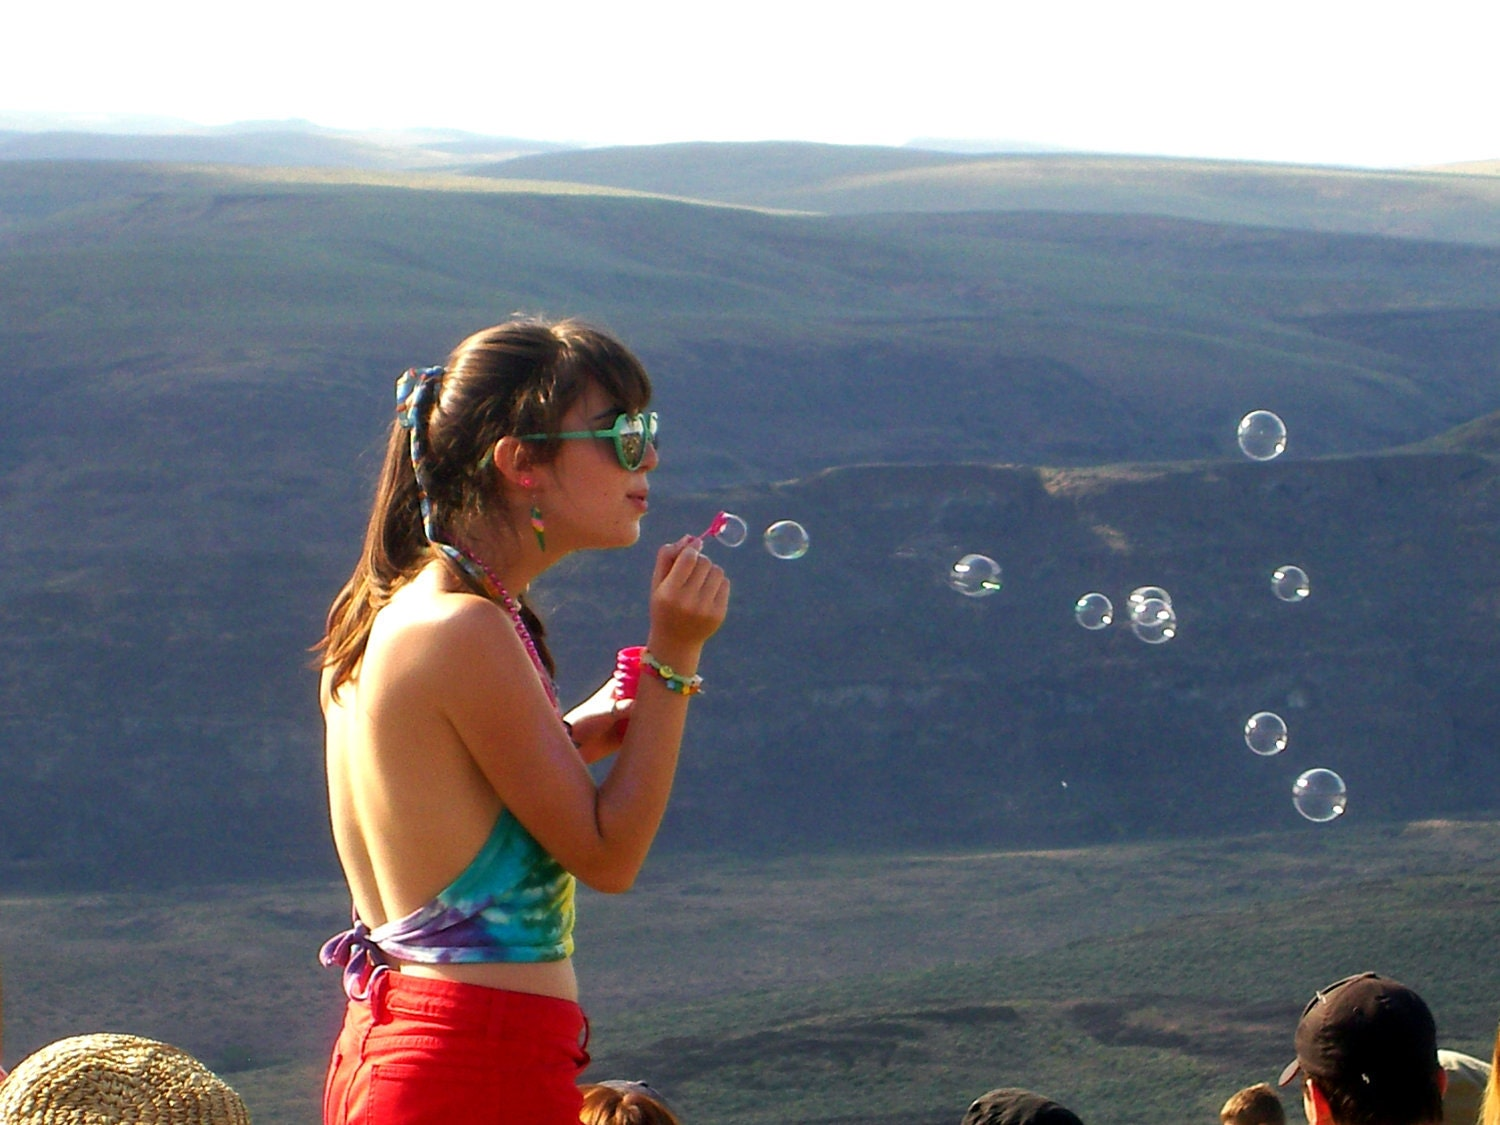 Girl Blowing Bubbles at Sasquatch Music Festival 2008 - 5x7 Digital Print